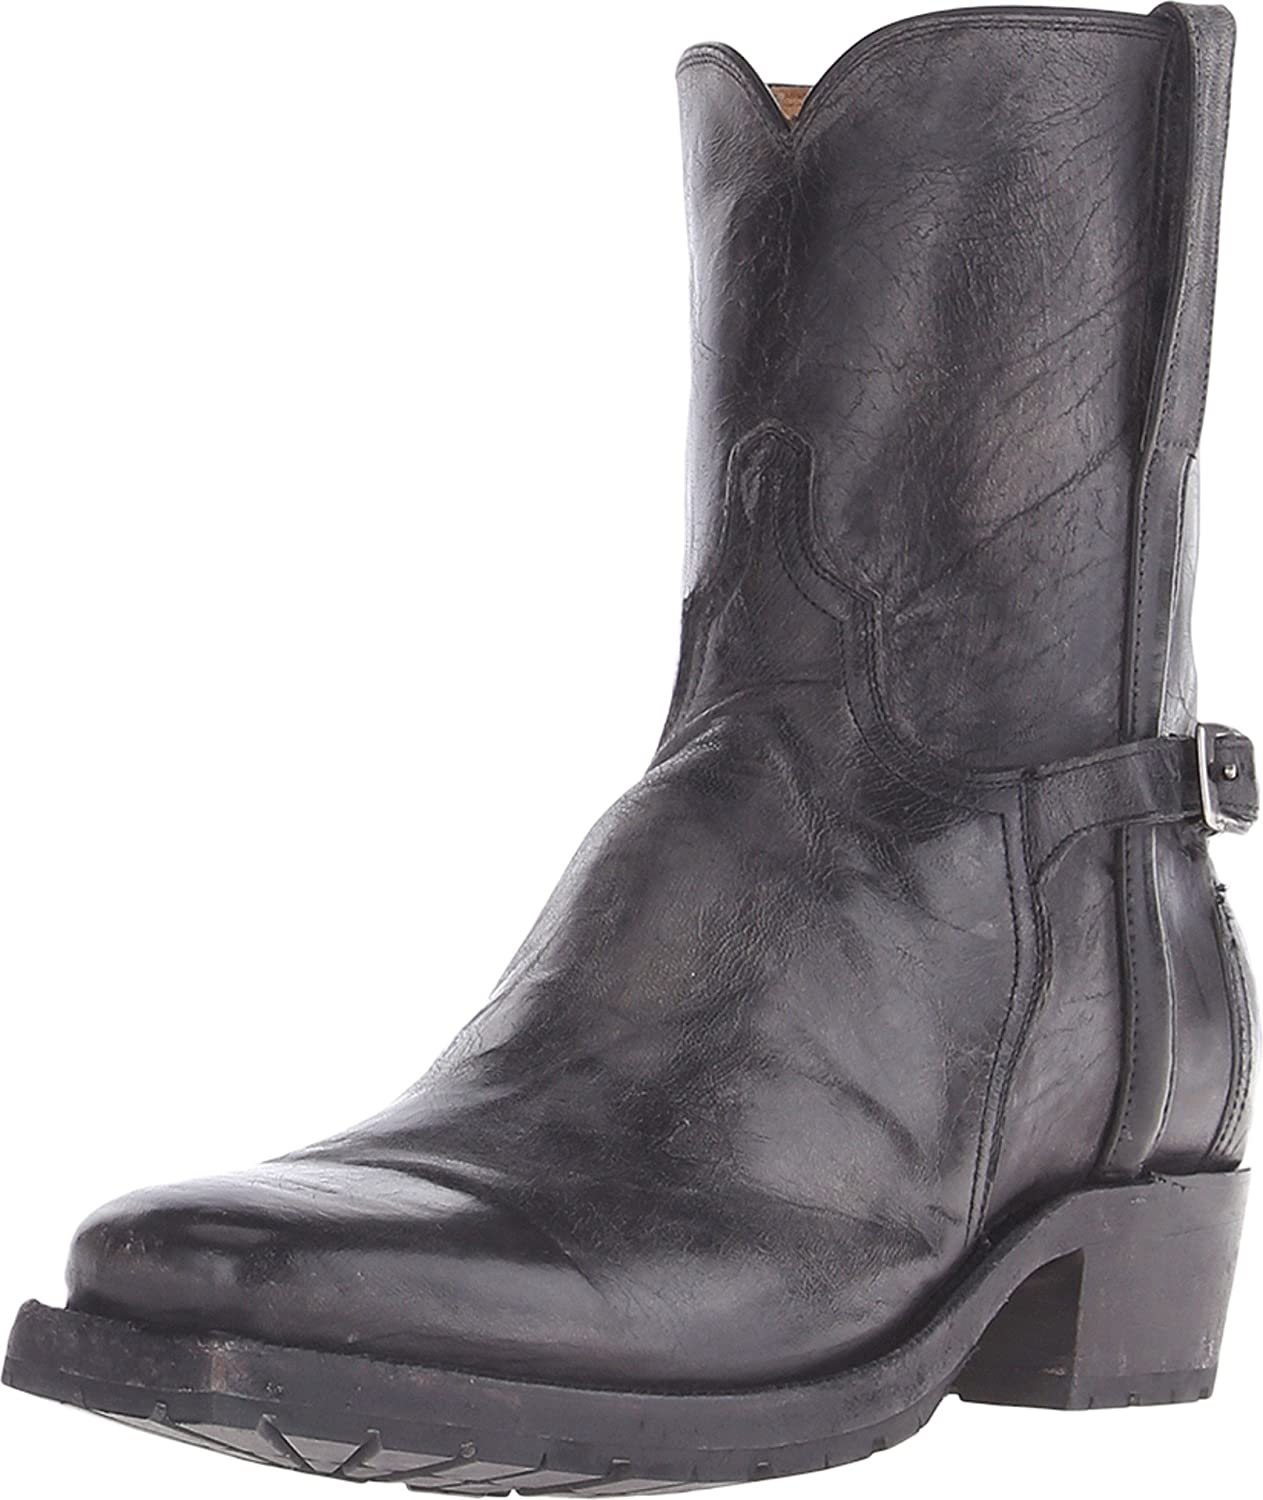 Lucchese Mens GY8907.K3